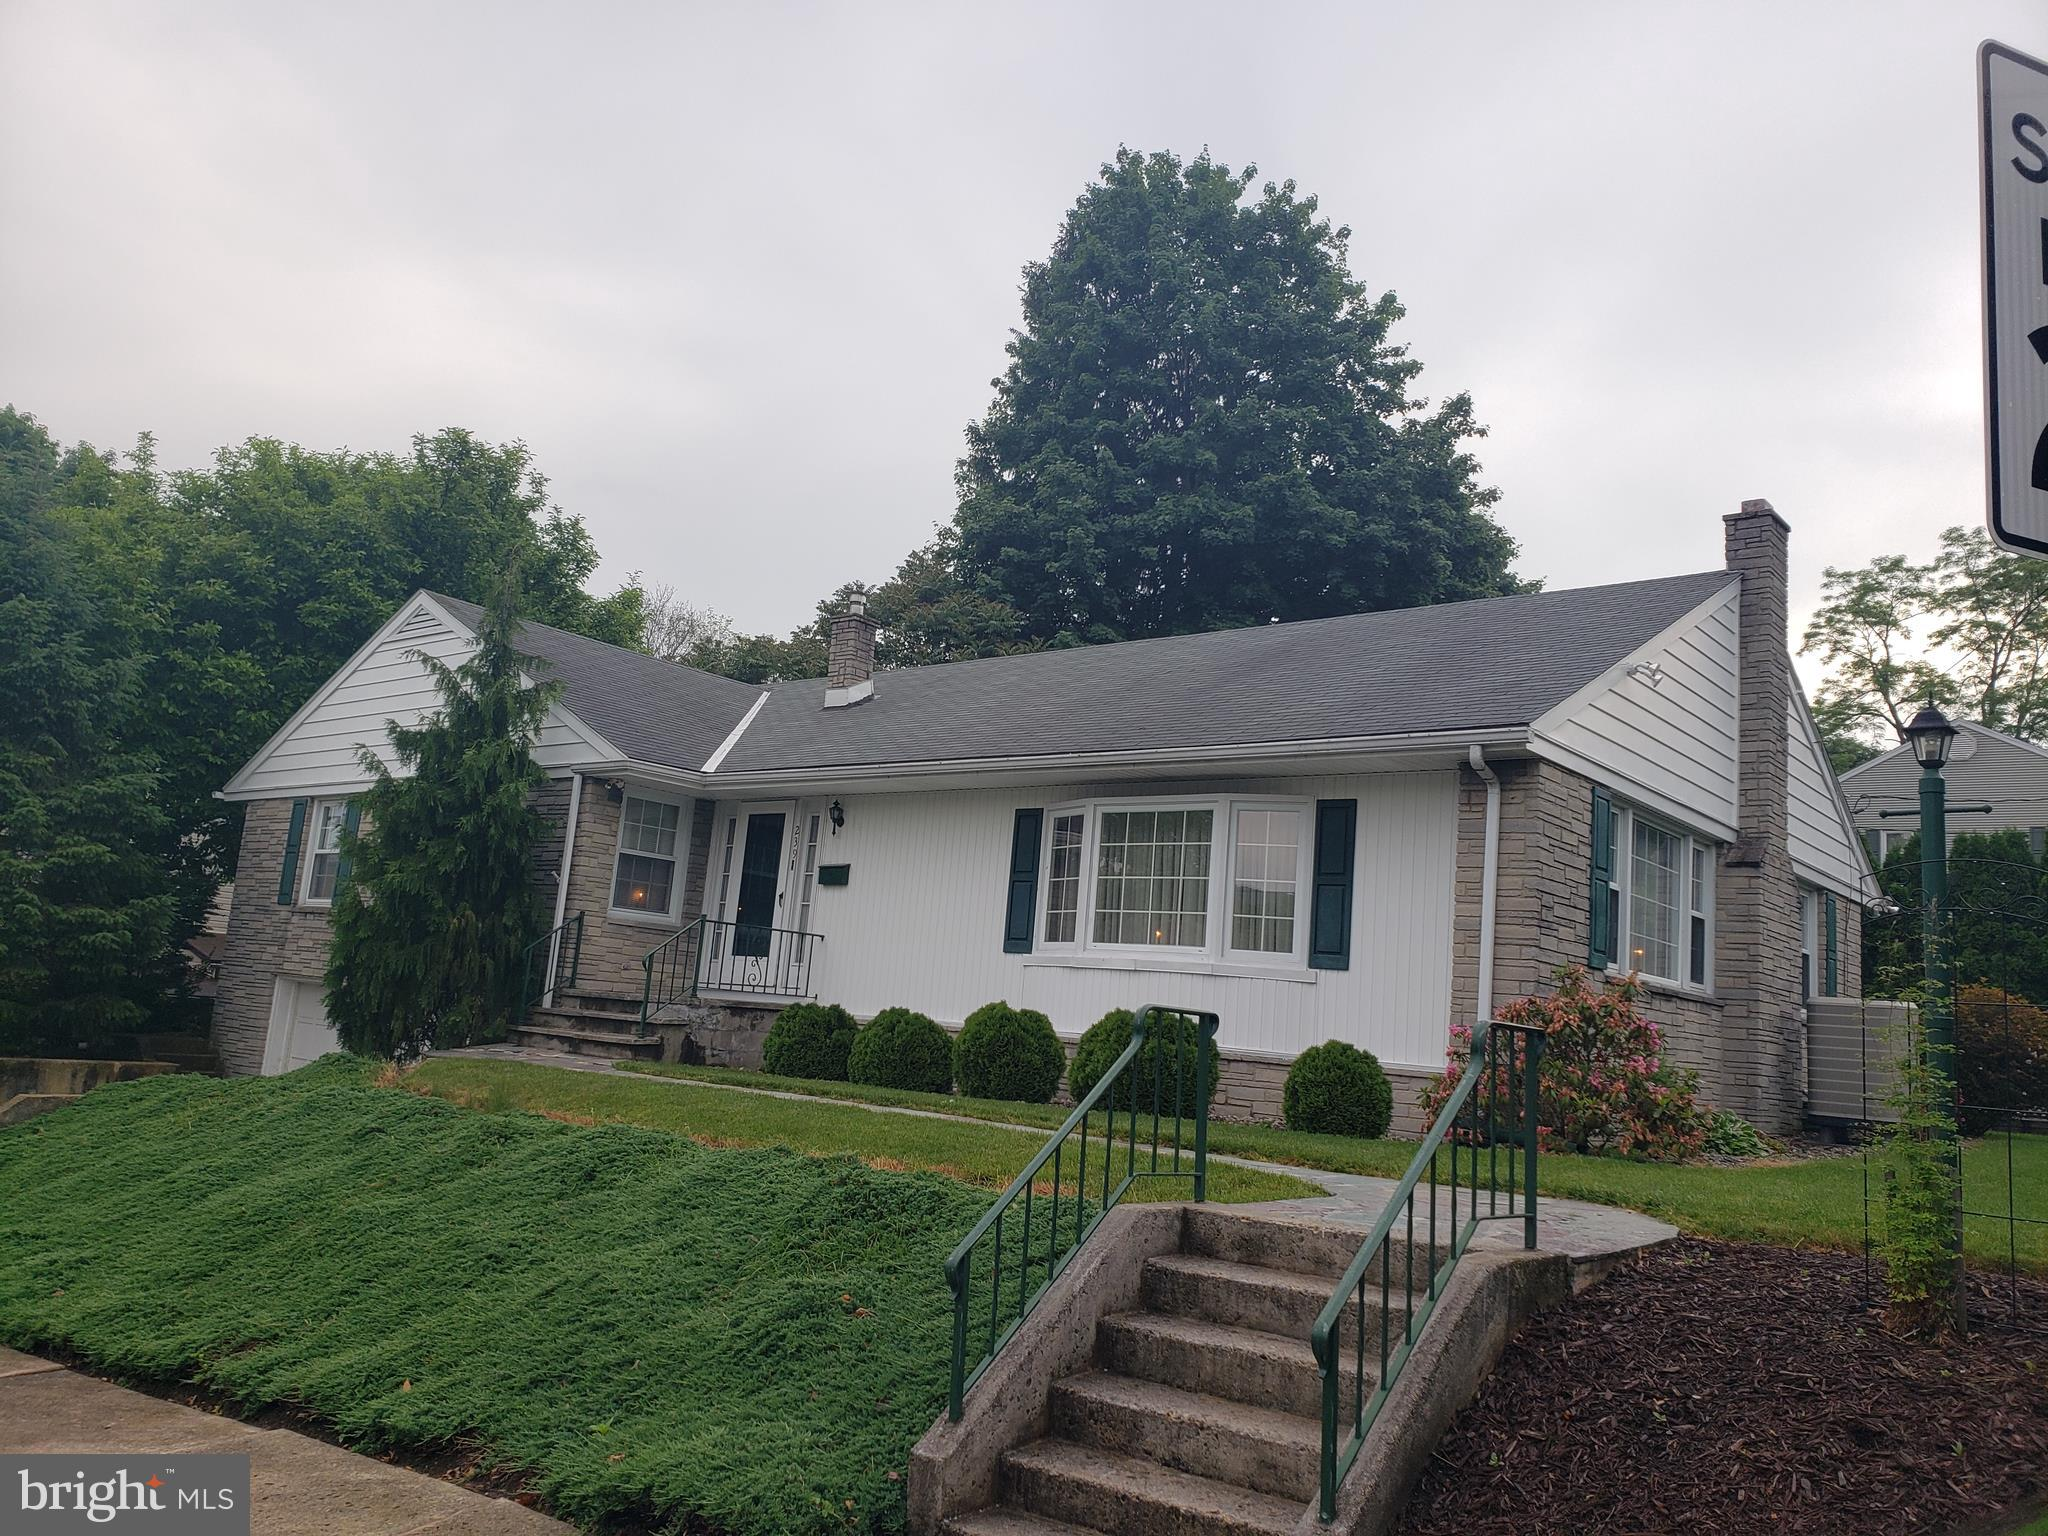 239 3RD STREET, PORT CARBON, PA 17965